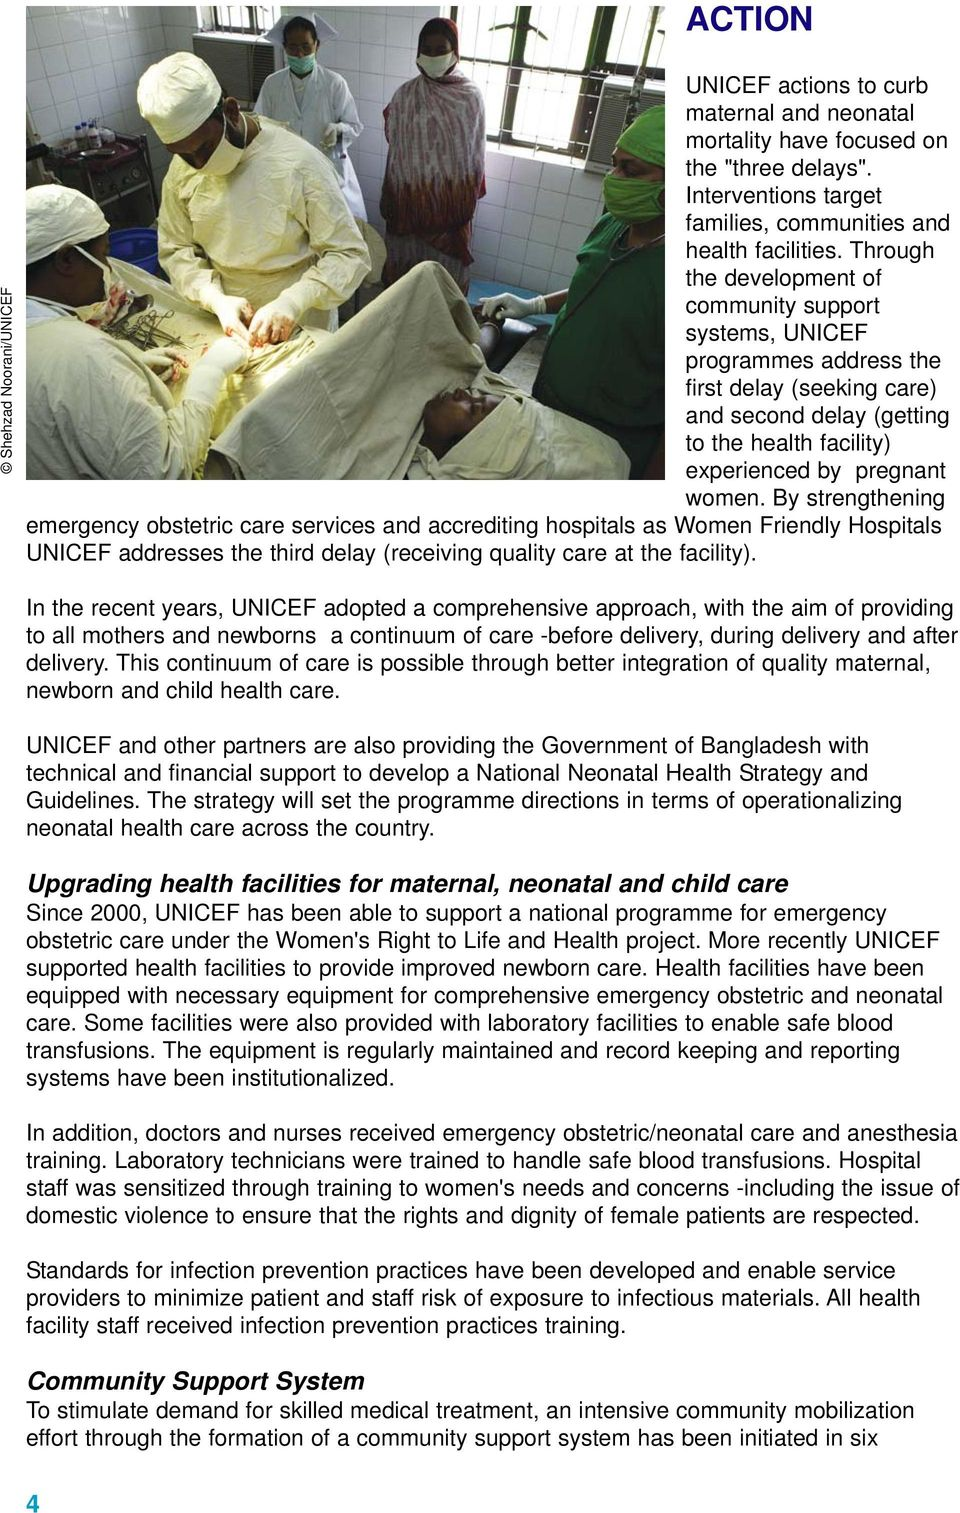 By strengthening emergency obstetric care services and accrediting hospitals as Women Friendly Hospitals UNICEF addresses the third delay (receiving quality care at the facility).